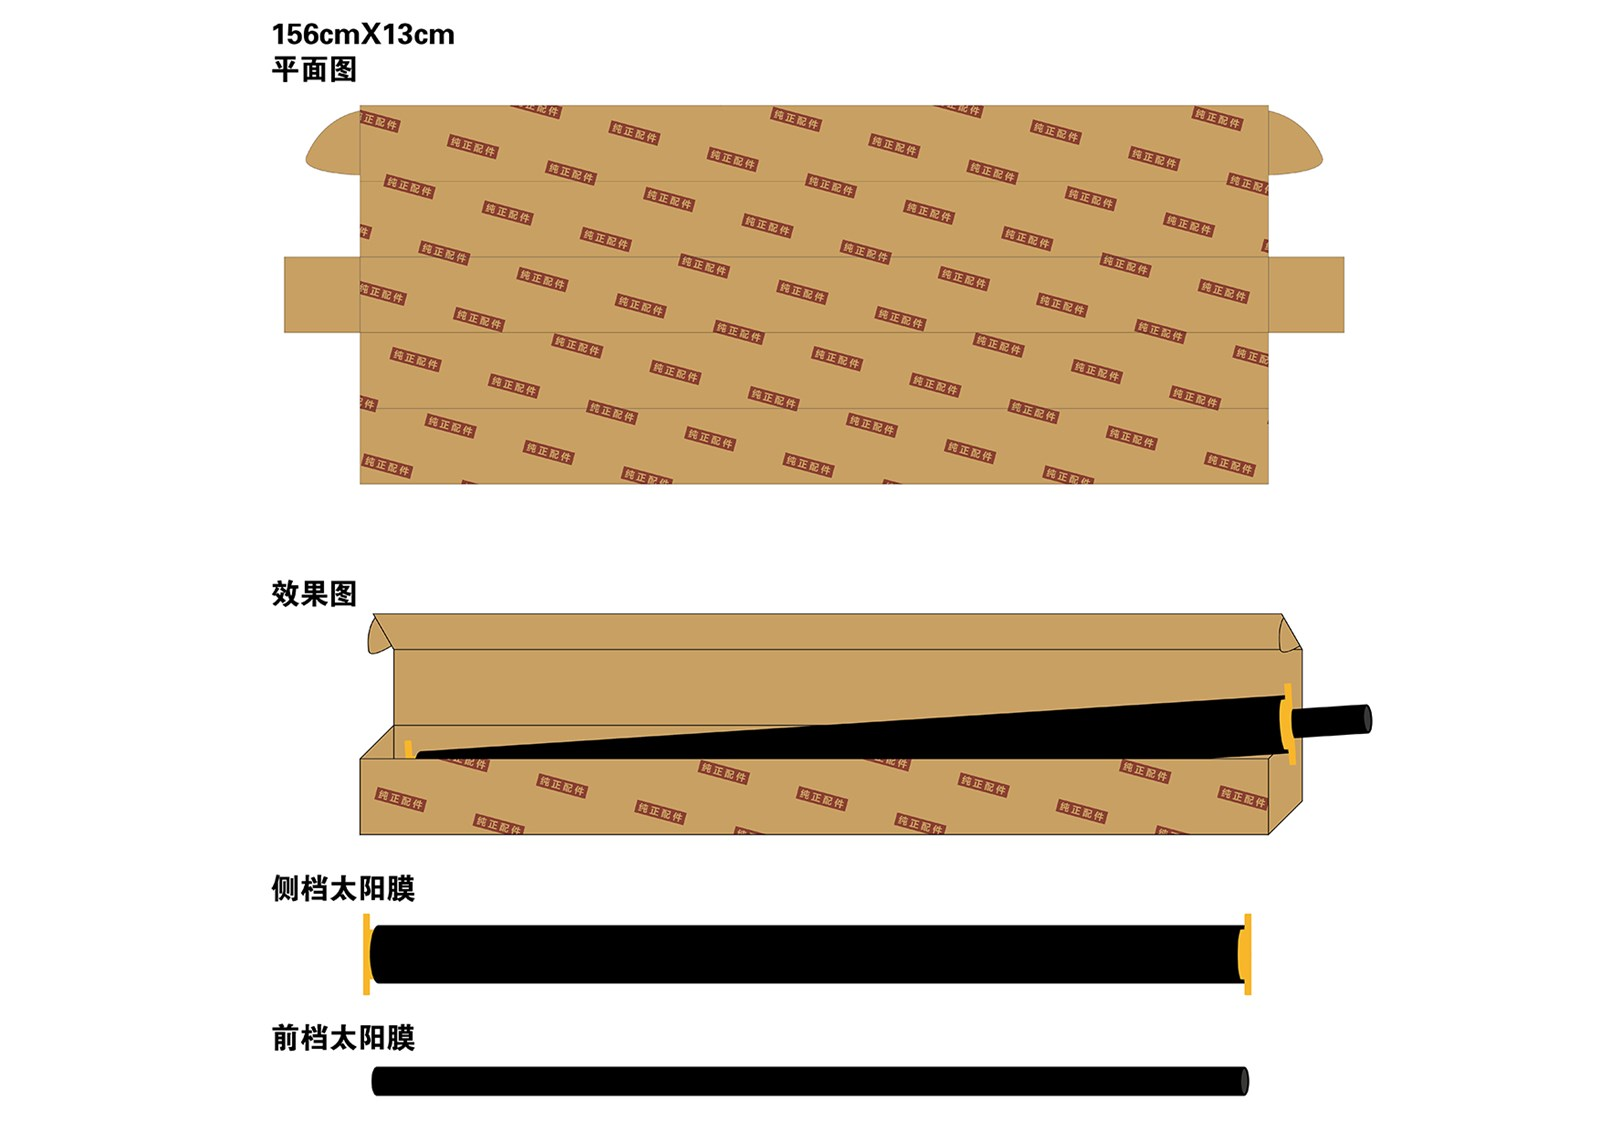 High quality 1 ply PET holographic 15230 m Vlt15 selfadhesive solar static window glue tinting film for car window